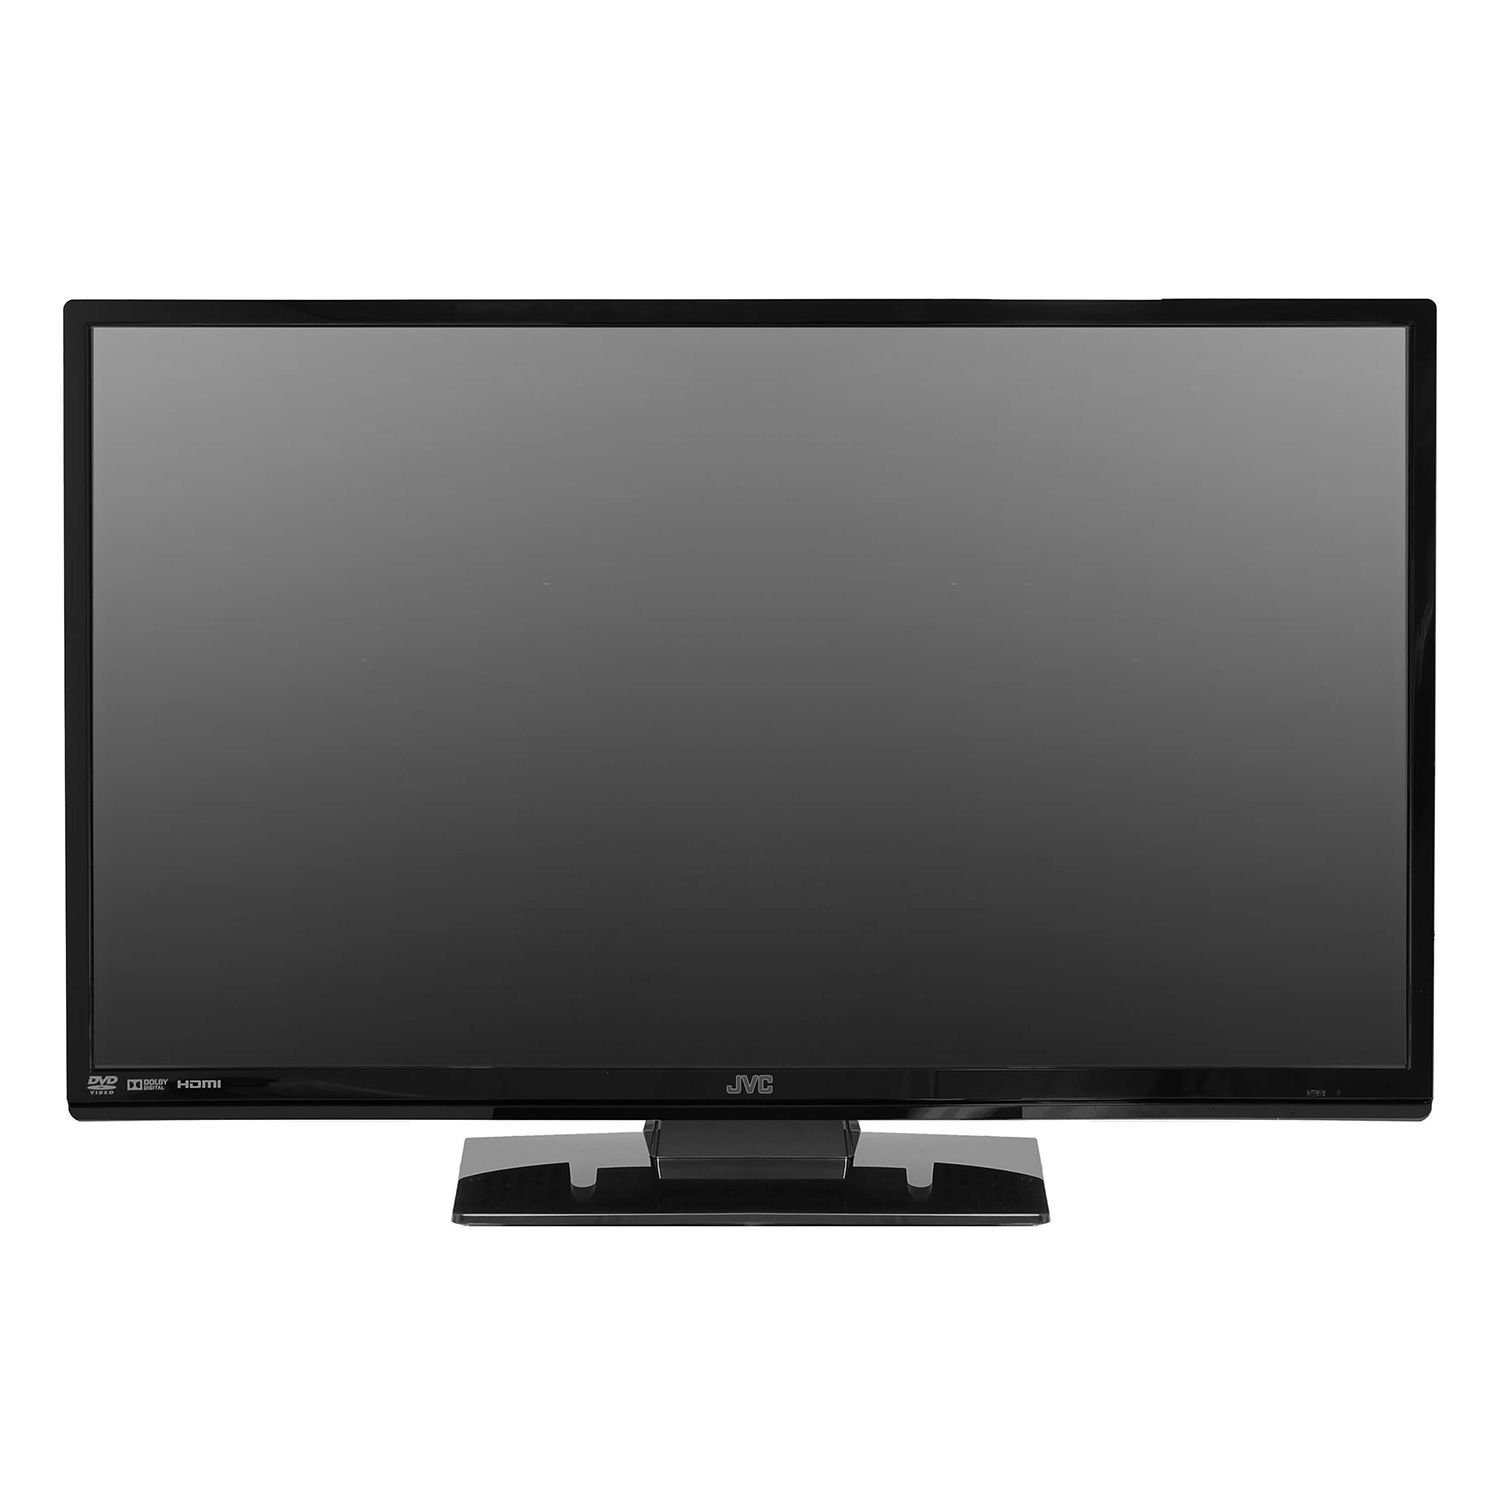 best 32 inch lcd tv dvd player combo reviews 2016 2017. Black Bedroom Furniture Sets. Home Design Ideas